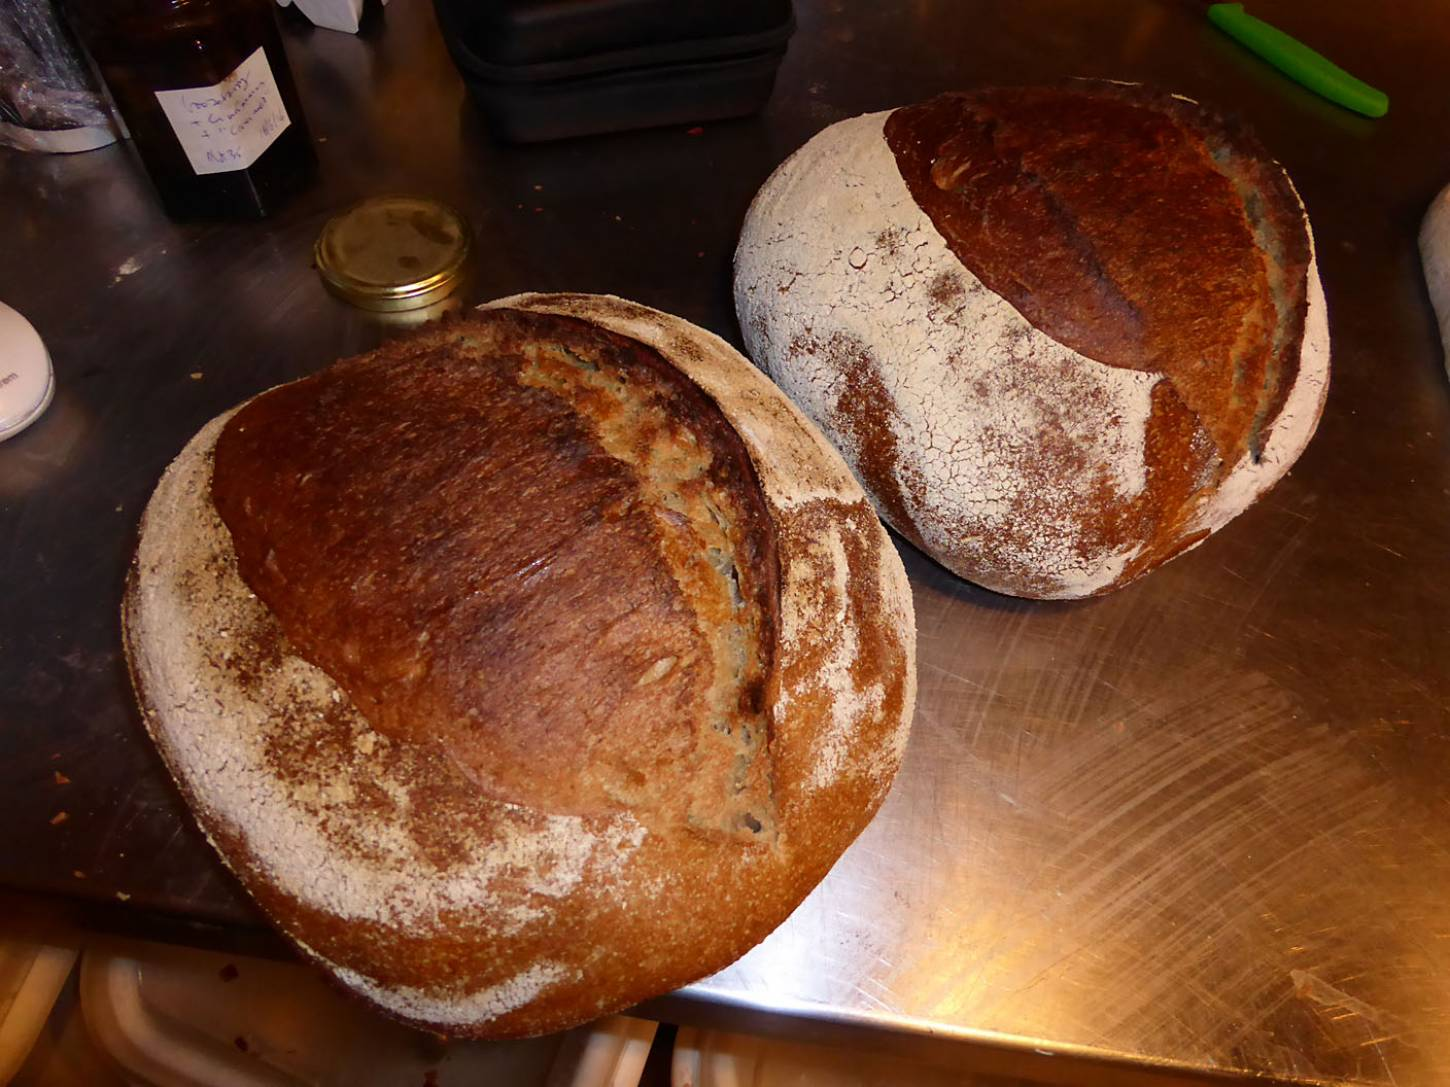 first baking test for the Miller's Choice - 1:14pm&nbsp;23<sup>rd</sup>&nbsp;Nov.&nbsp;'17  <a href='http://maps.google.com/?t=h&q=51.480681,-0.108133&z=18&output=embed' target=_blank><img src='http://www.brockwell-bake.org.uk/img/marker.png' style='border:none;vertical-align:top' height=16px></a>